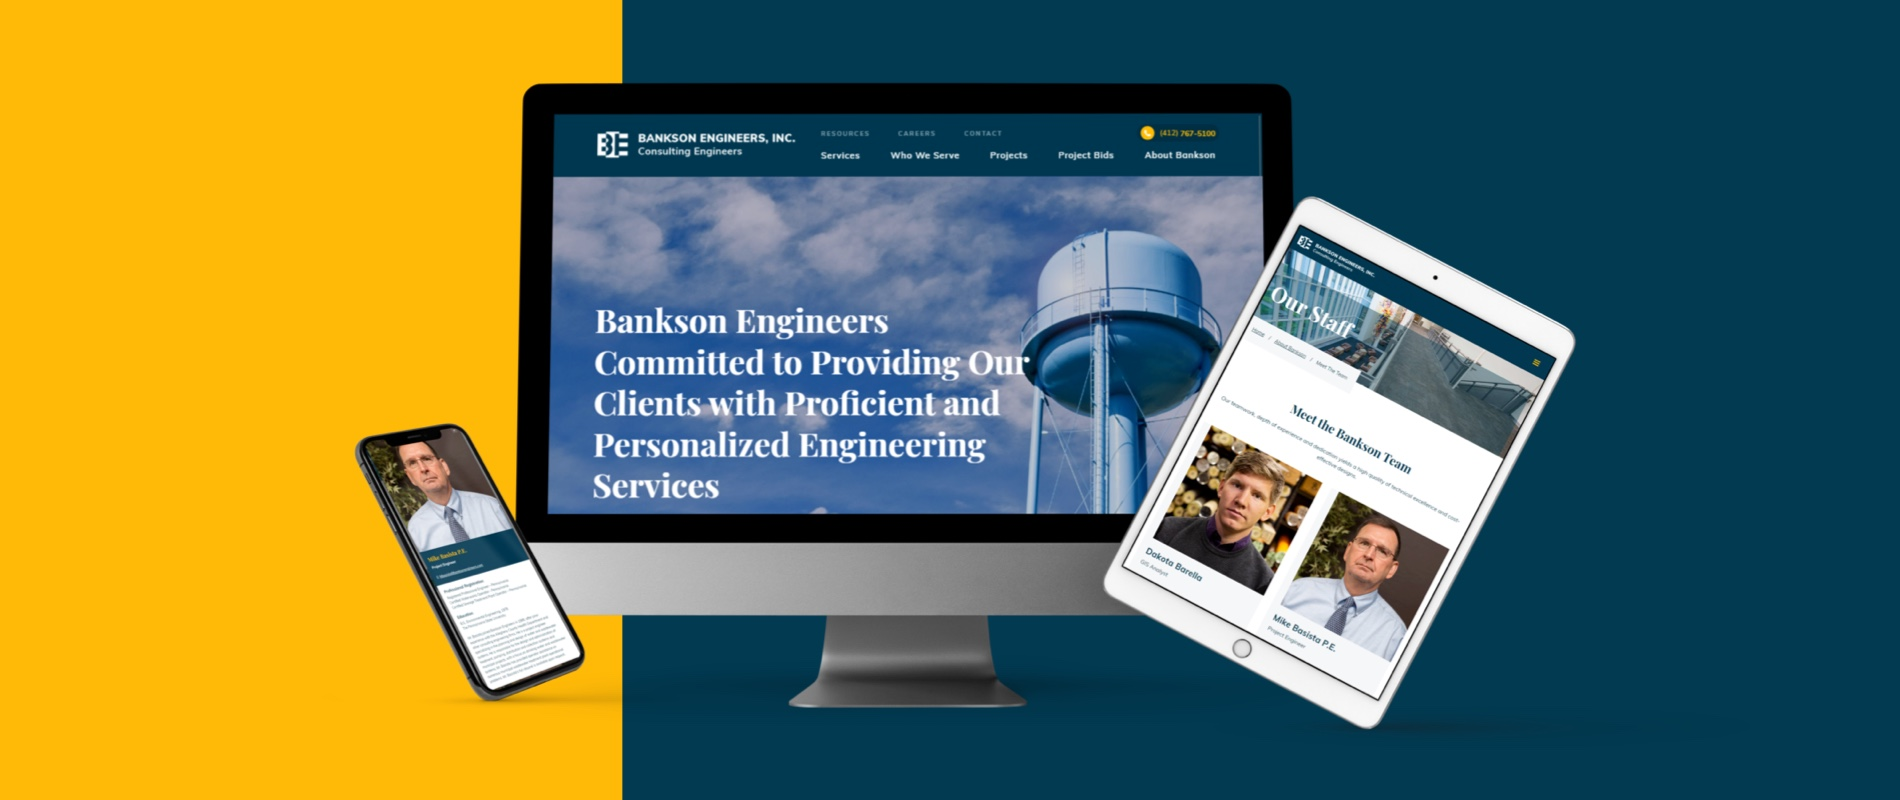 Bankson website case study image of screen